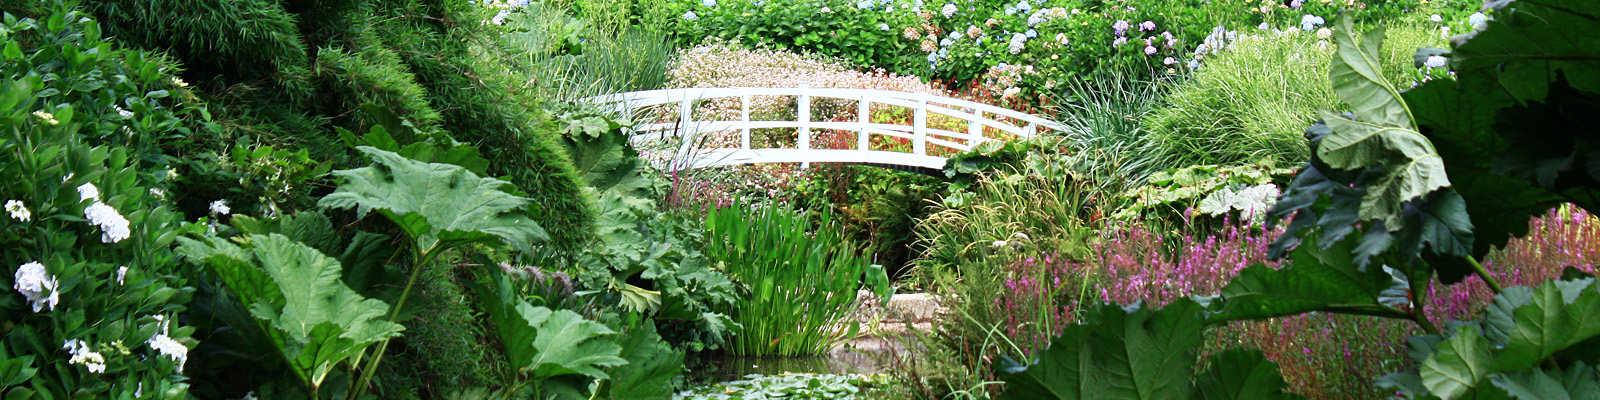 Green Parrot Gardens | Why You Need a Garden Designer | Bridge